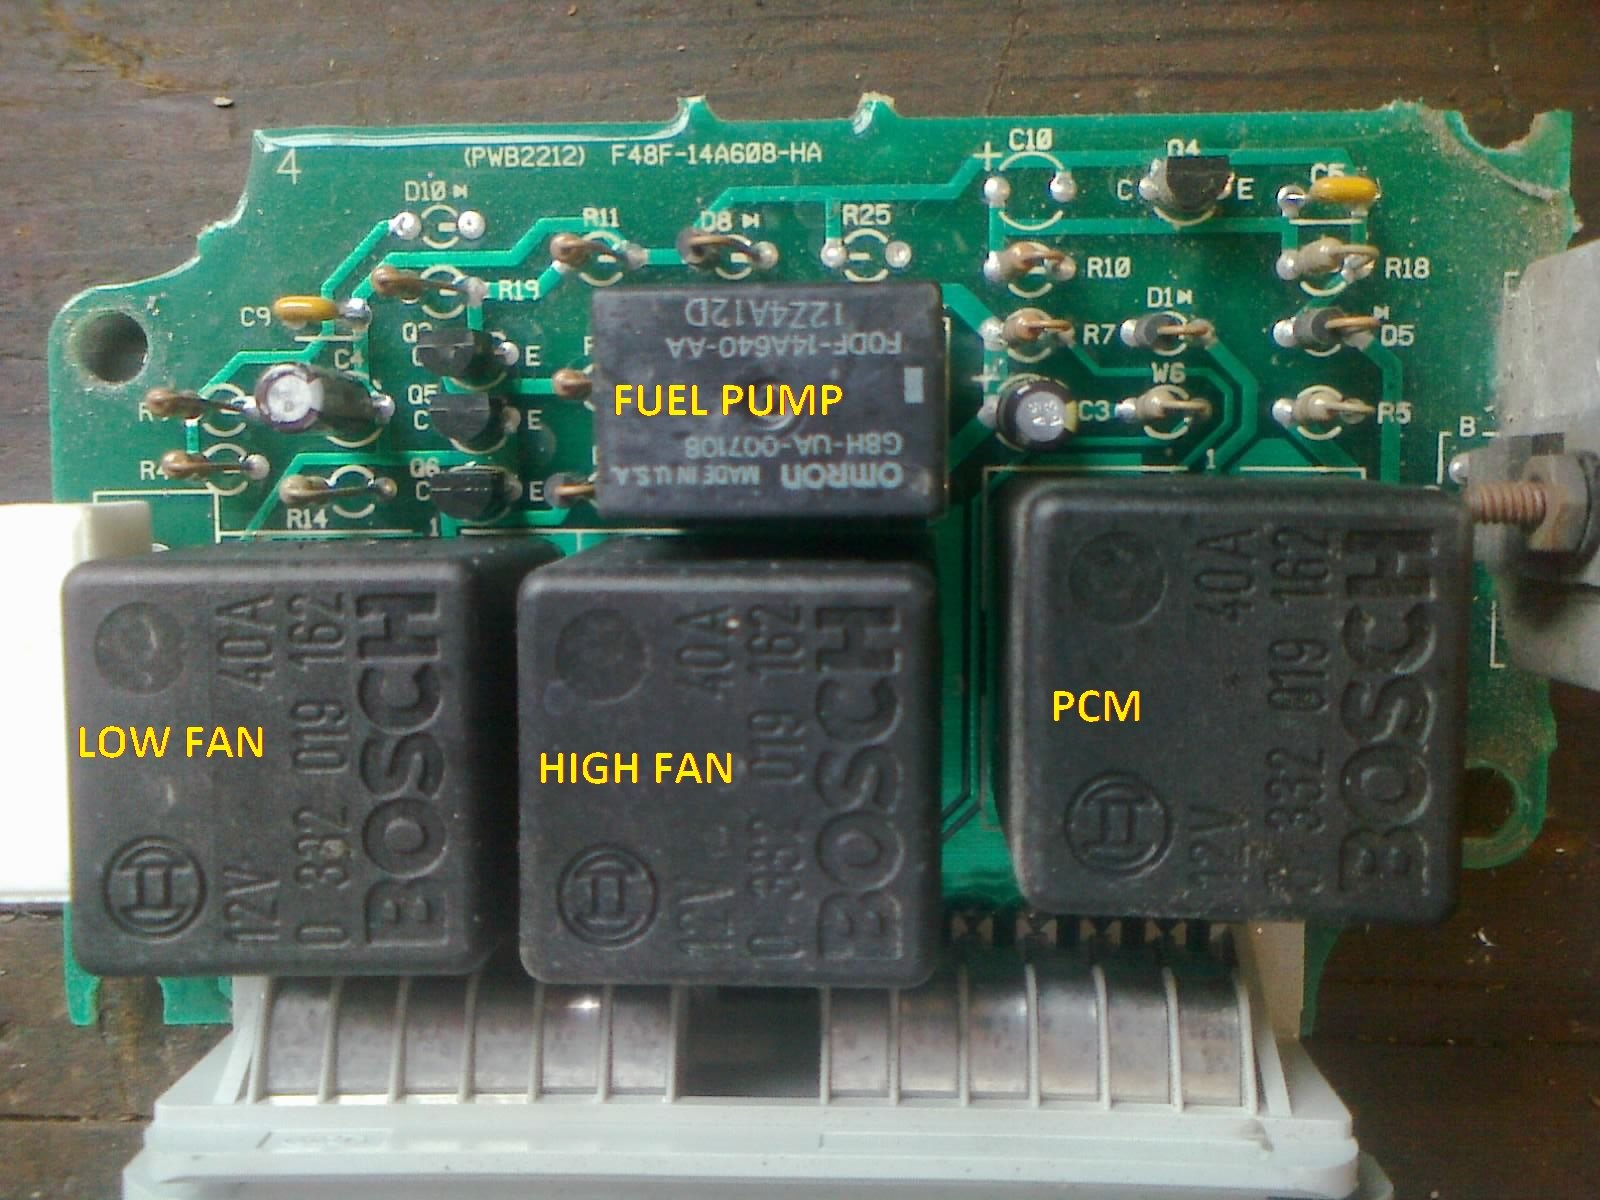 D Mustang Gt Ccrm Repair Image Relays on 5 Post Relay Wiring Diagram